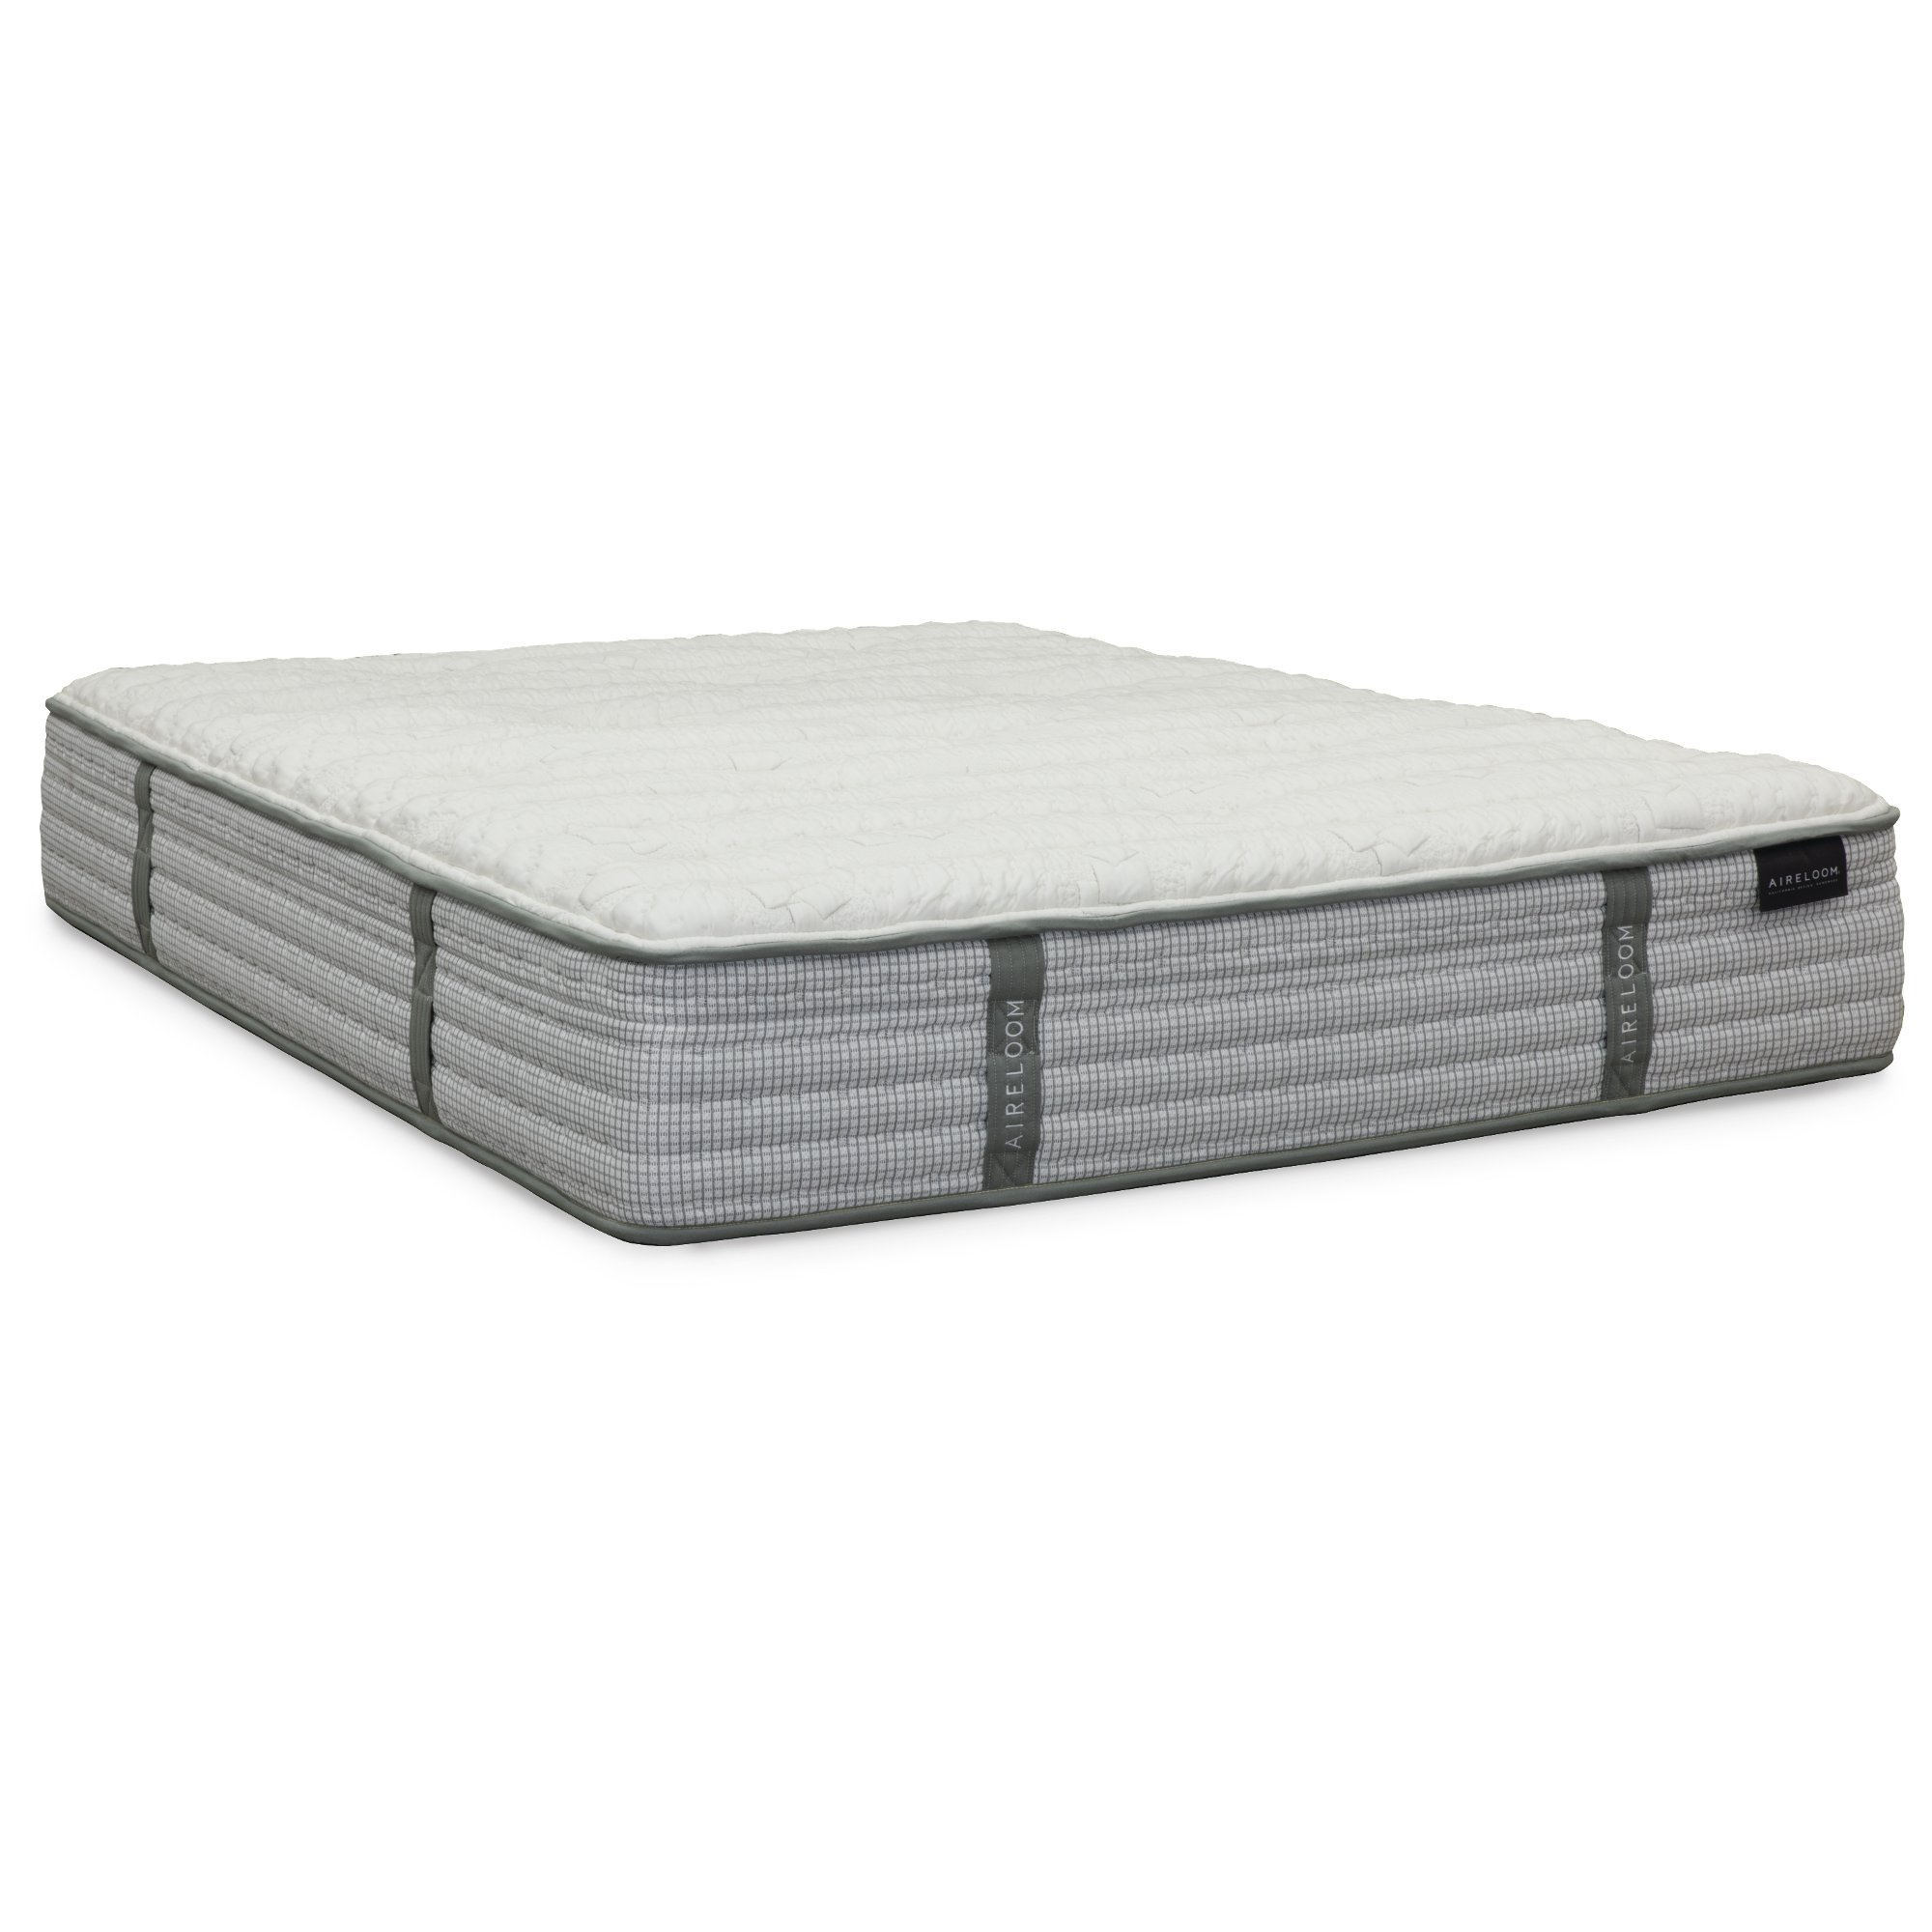 aireloom queen mattress rebecca rc willey furniture store